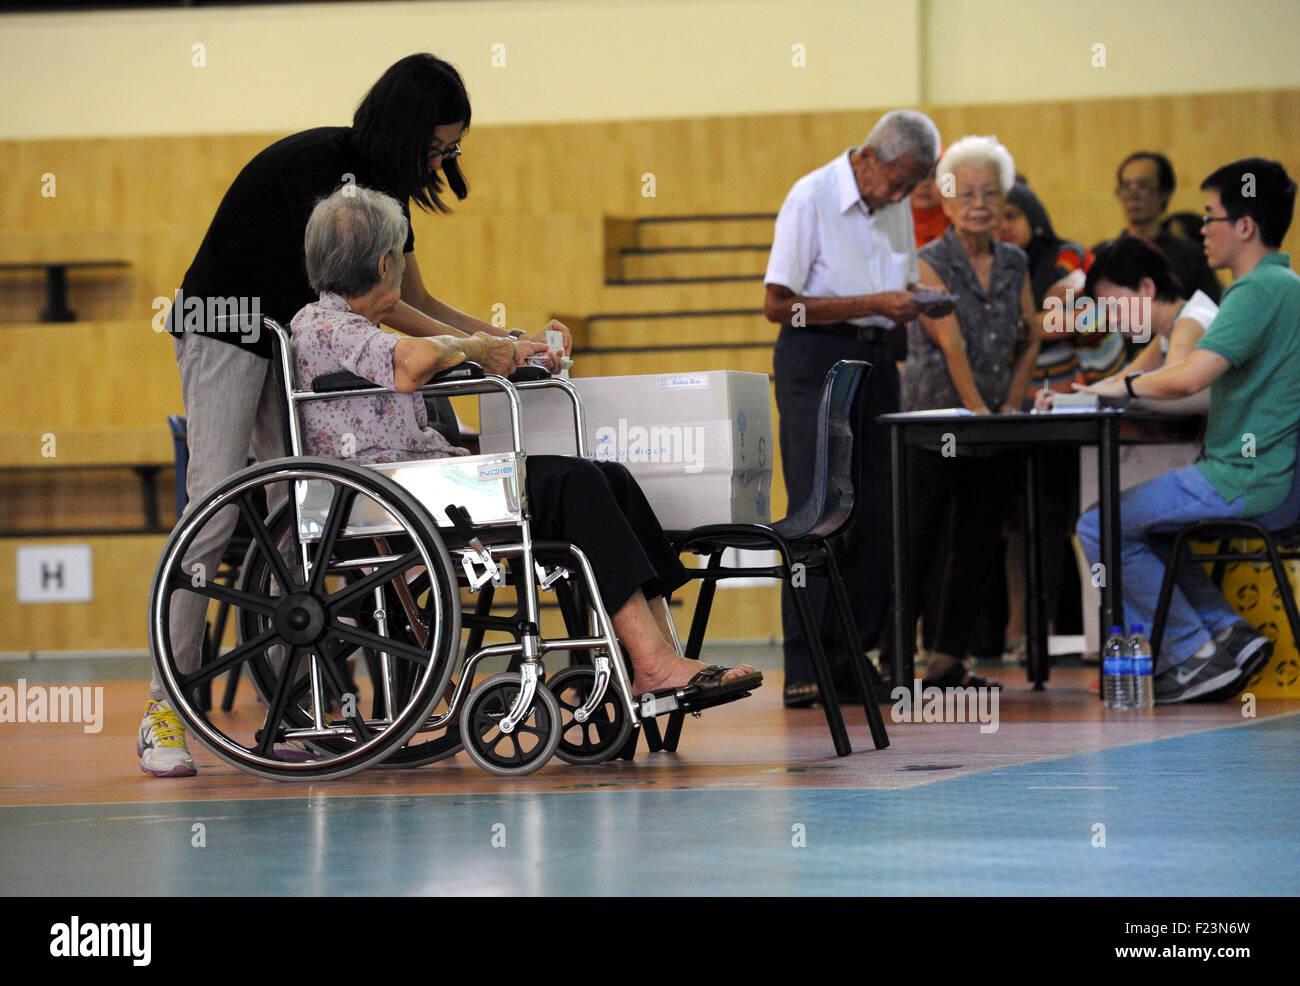 Singapore. 11th Sep, 2015. Singaporeans vote at a polling station at Singapore's Toa Payoh Sept. 11, 2015. Singaporeans - Stock Image